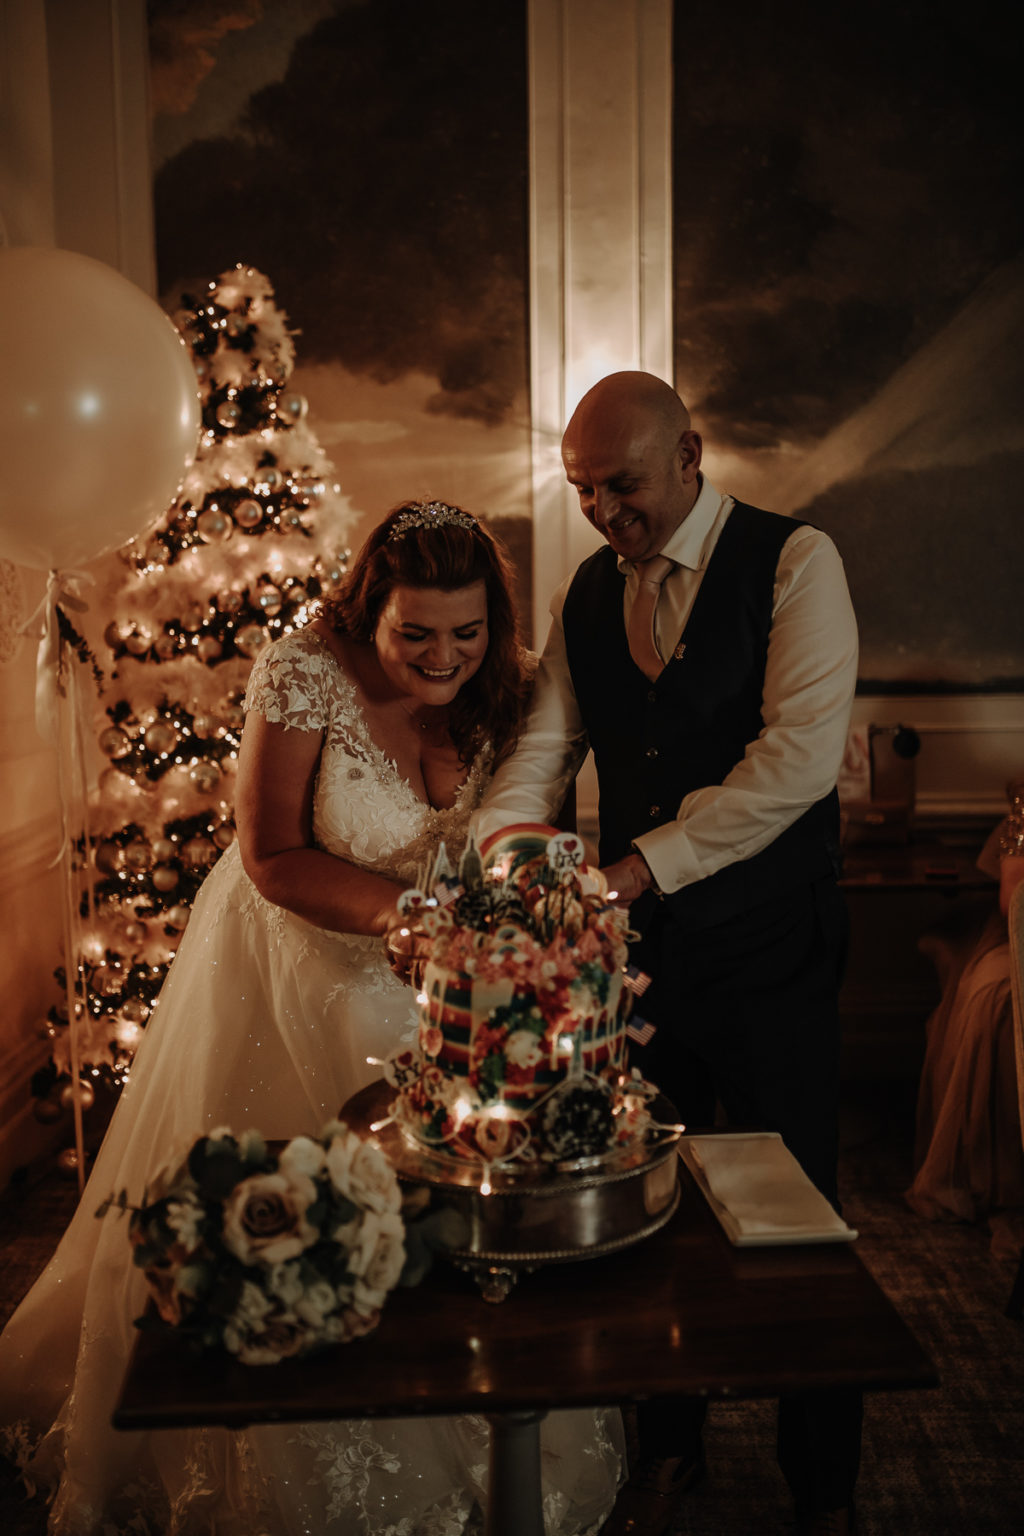 Romantic Micro Wedding At The Belsfield Hotel, Lake District